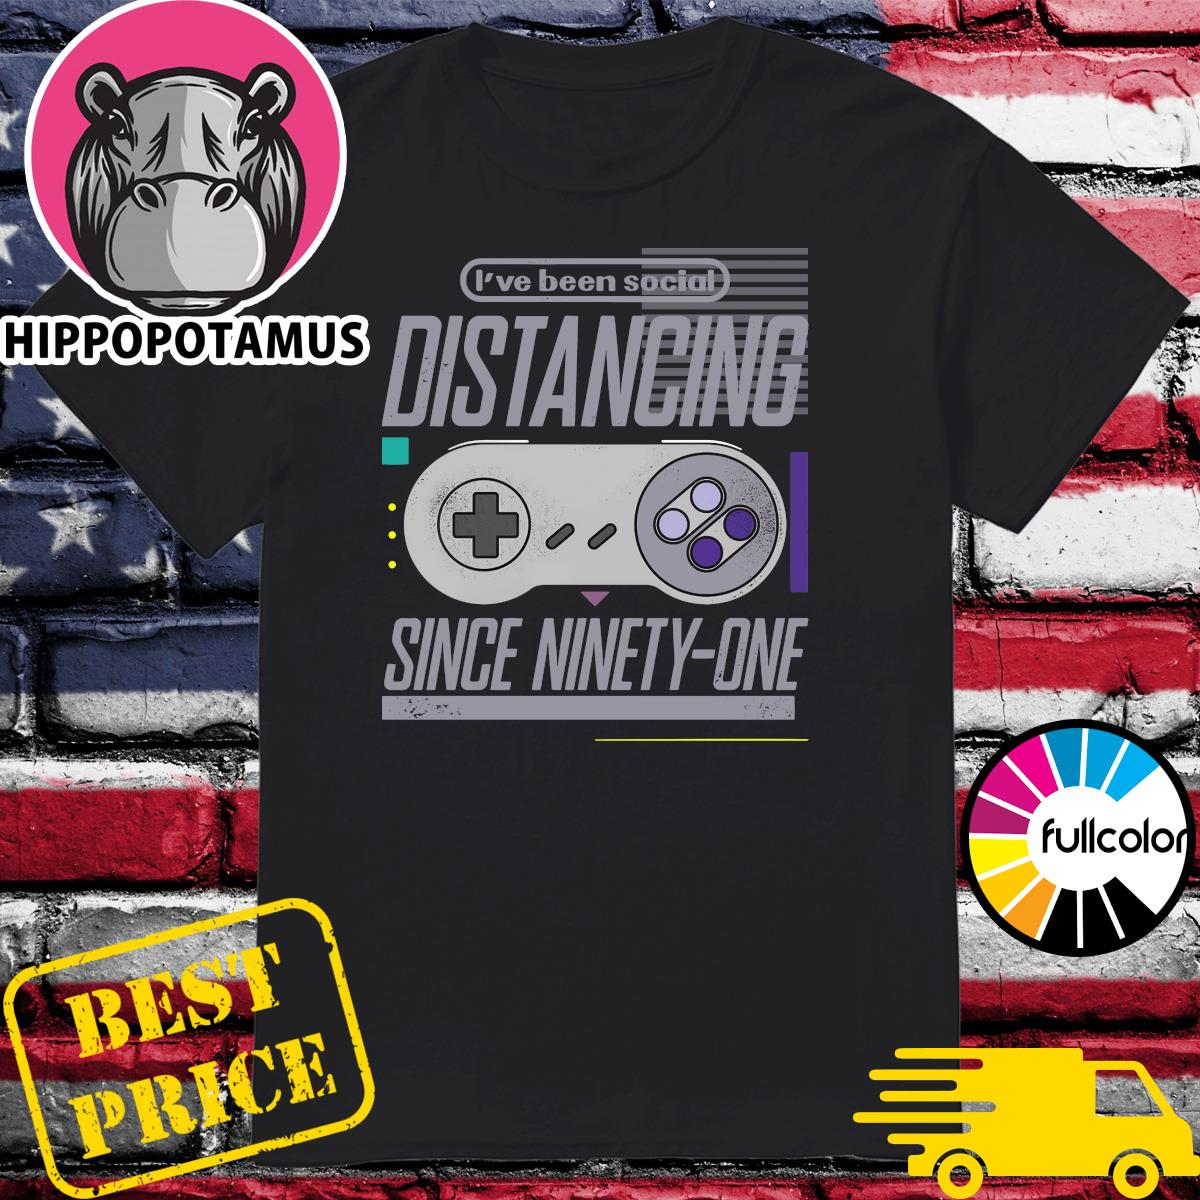 Official Gaming I've Been Social Distancing Since Ninety - One Shirt